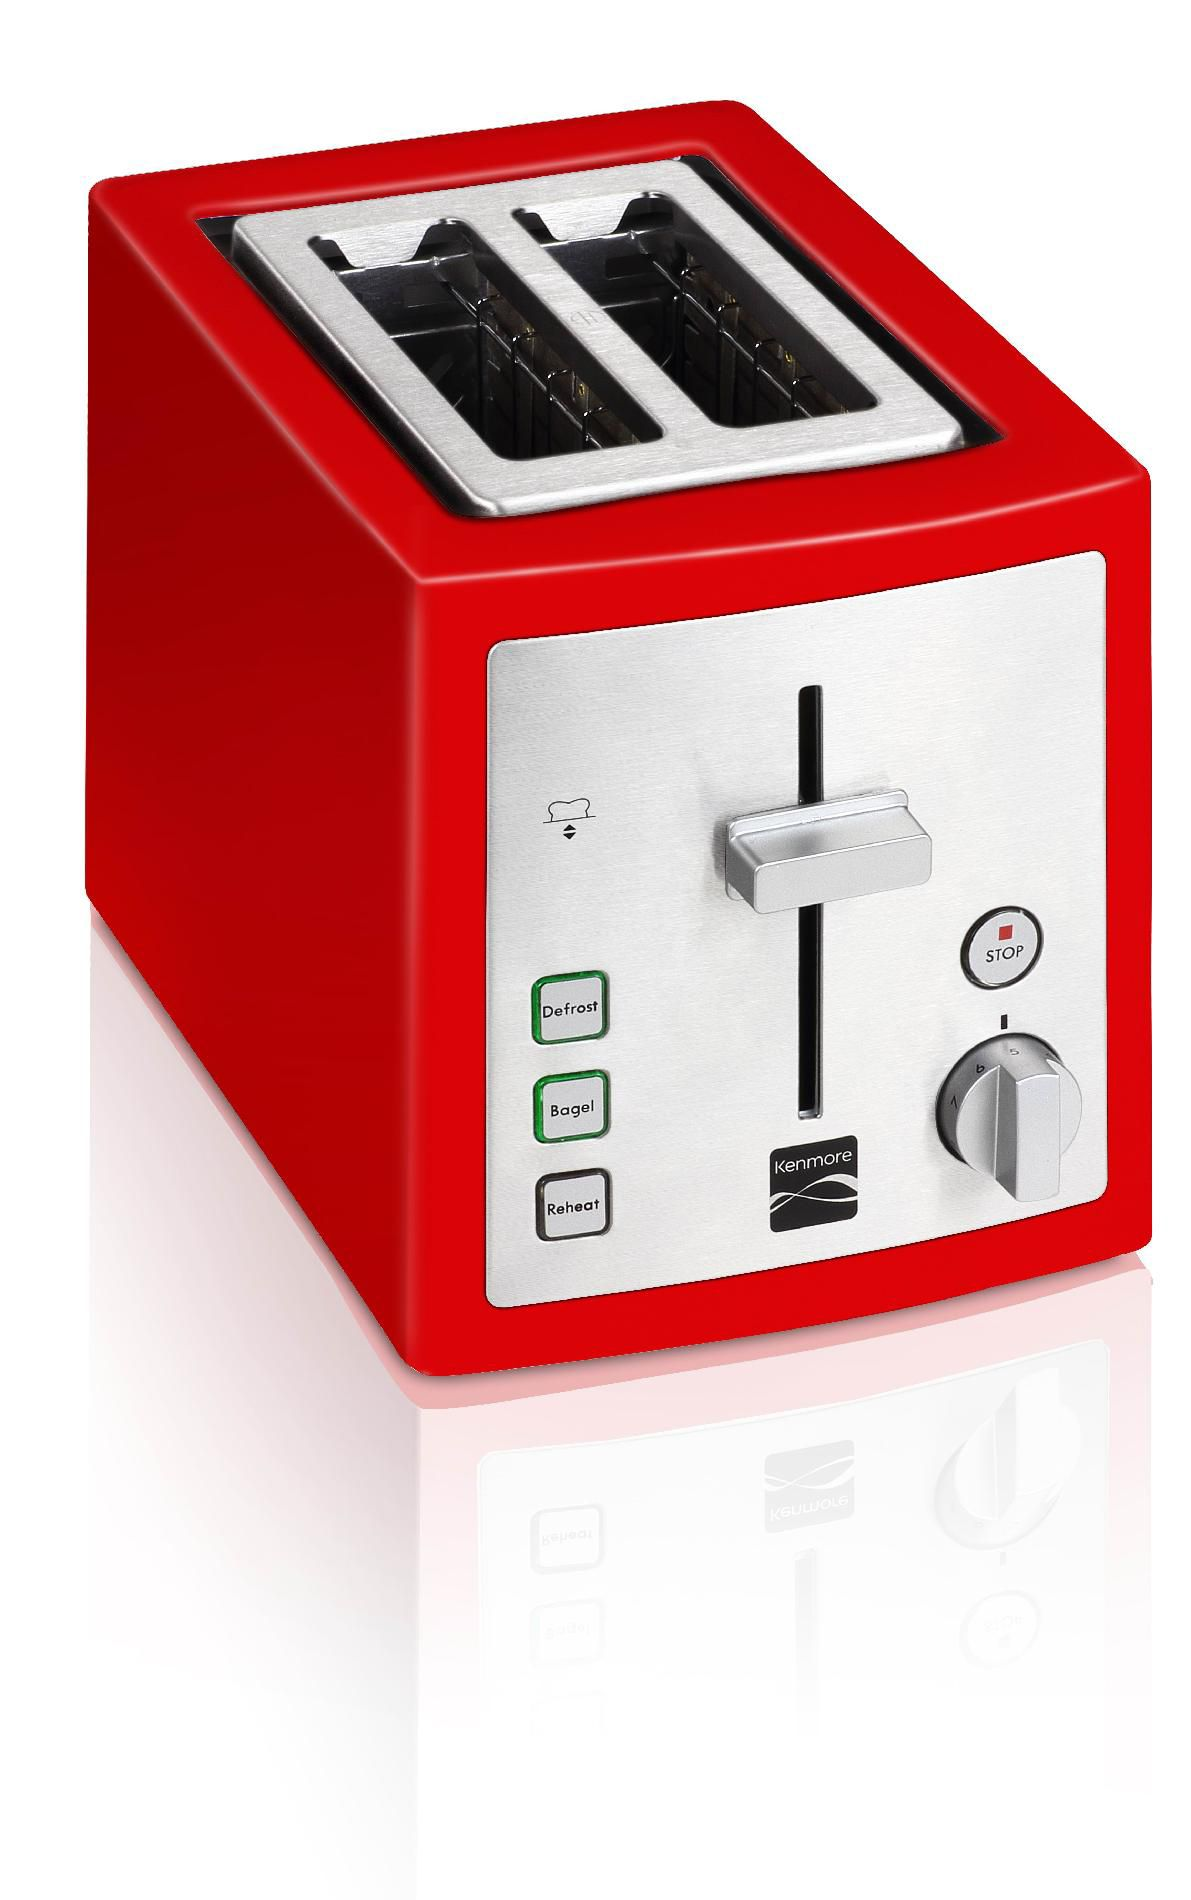 Kenmore 2-Slice Toaster, Red